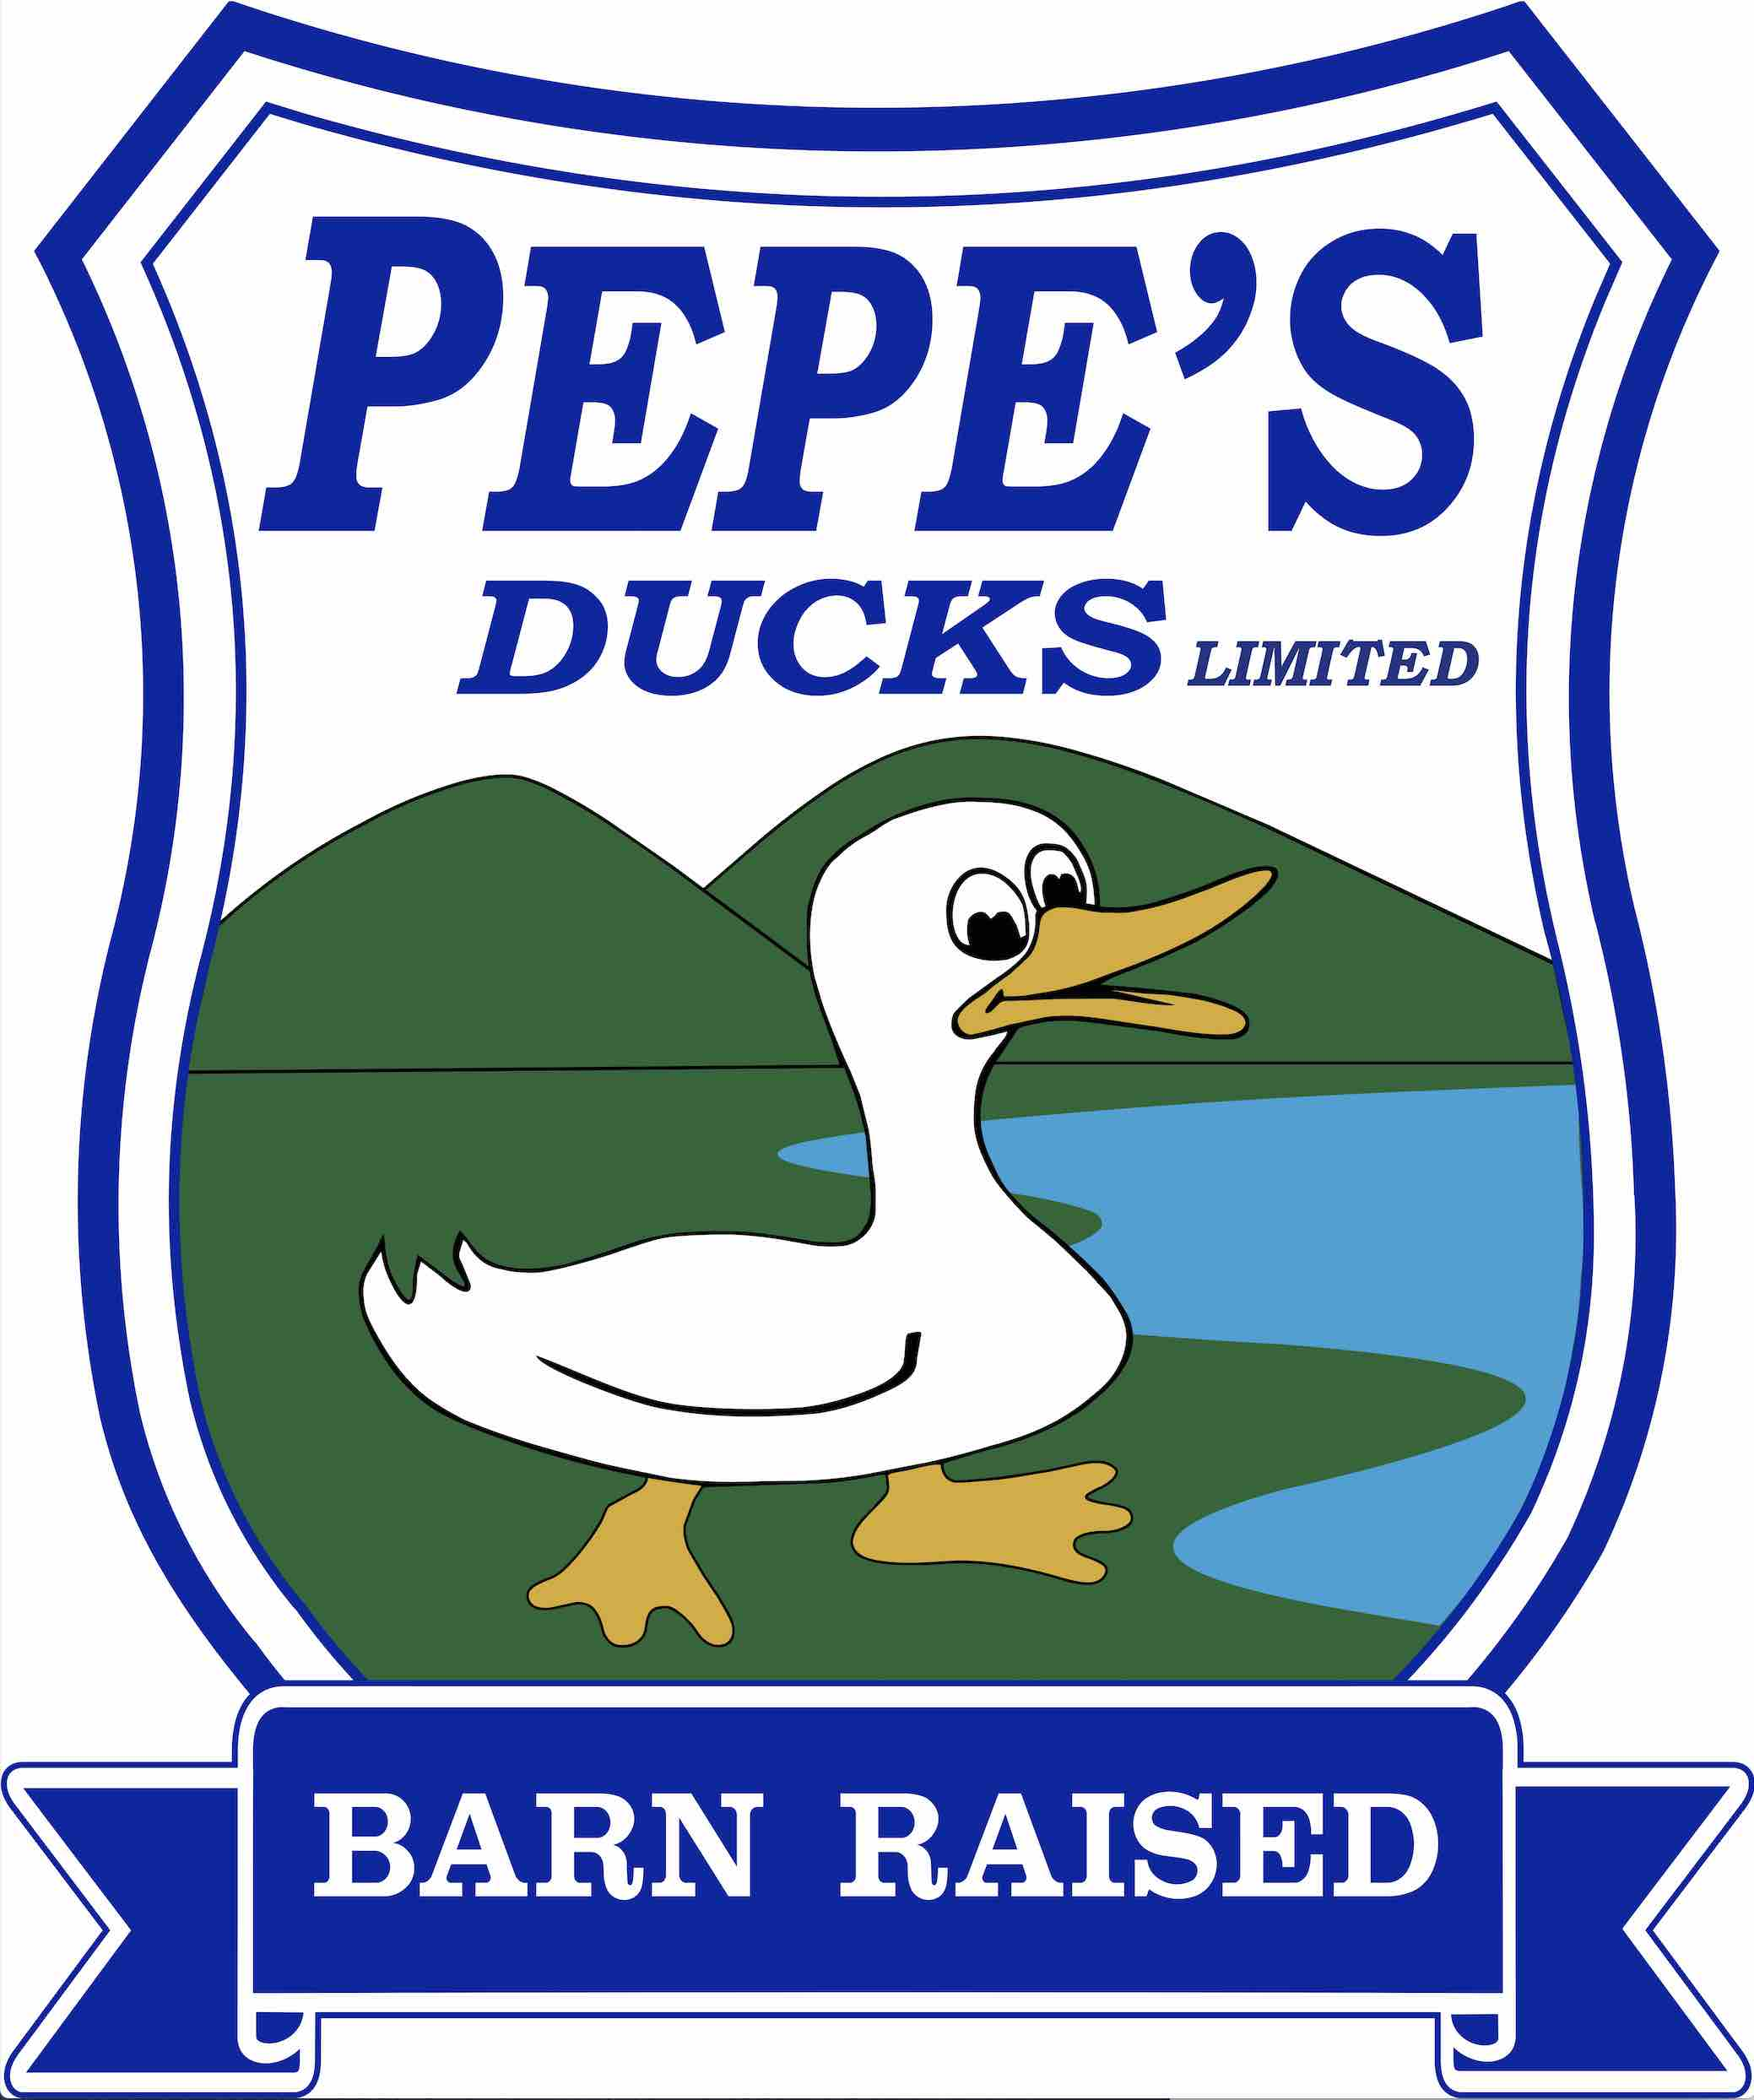 Pepe's Ducks Ltd